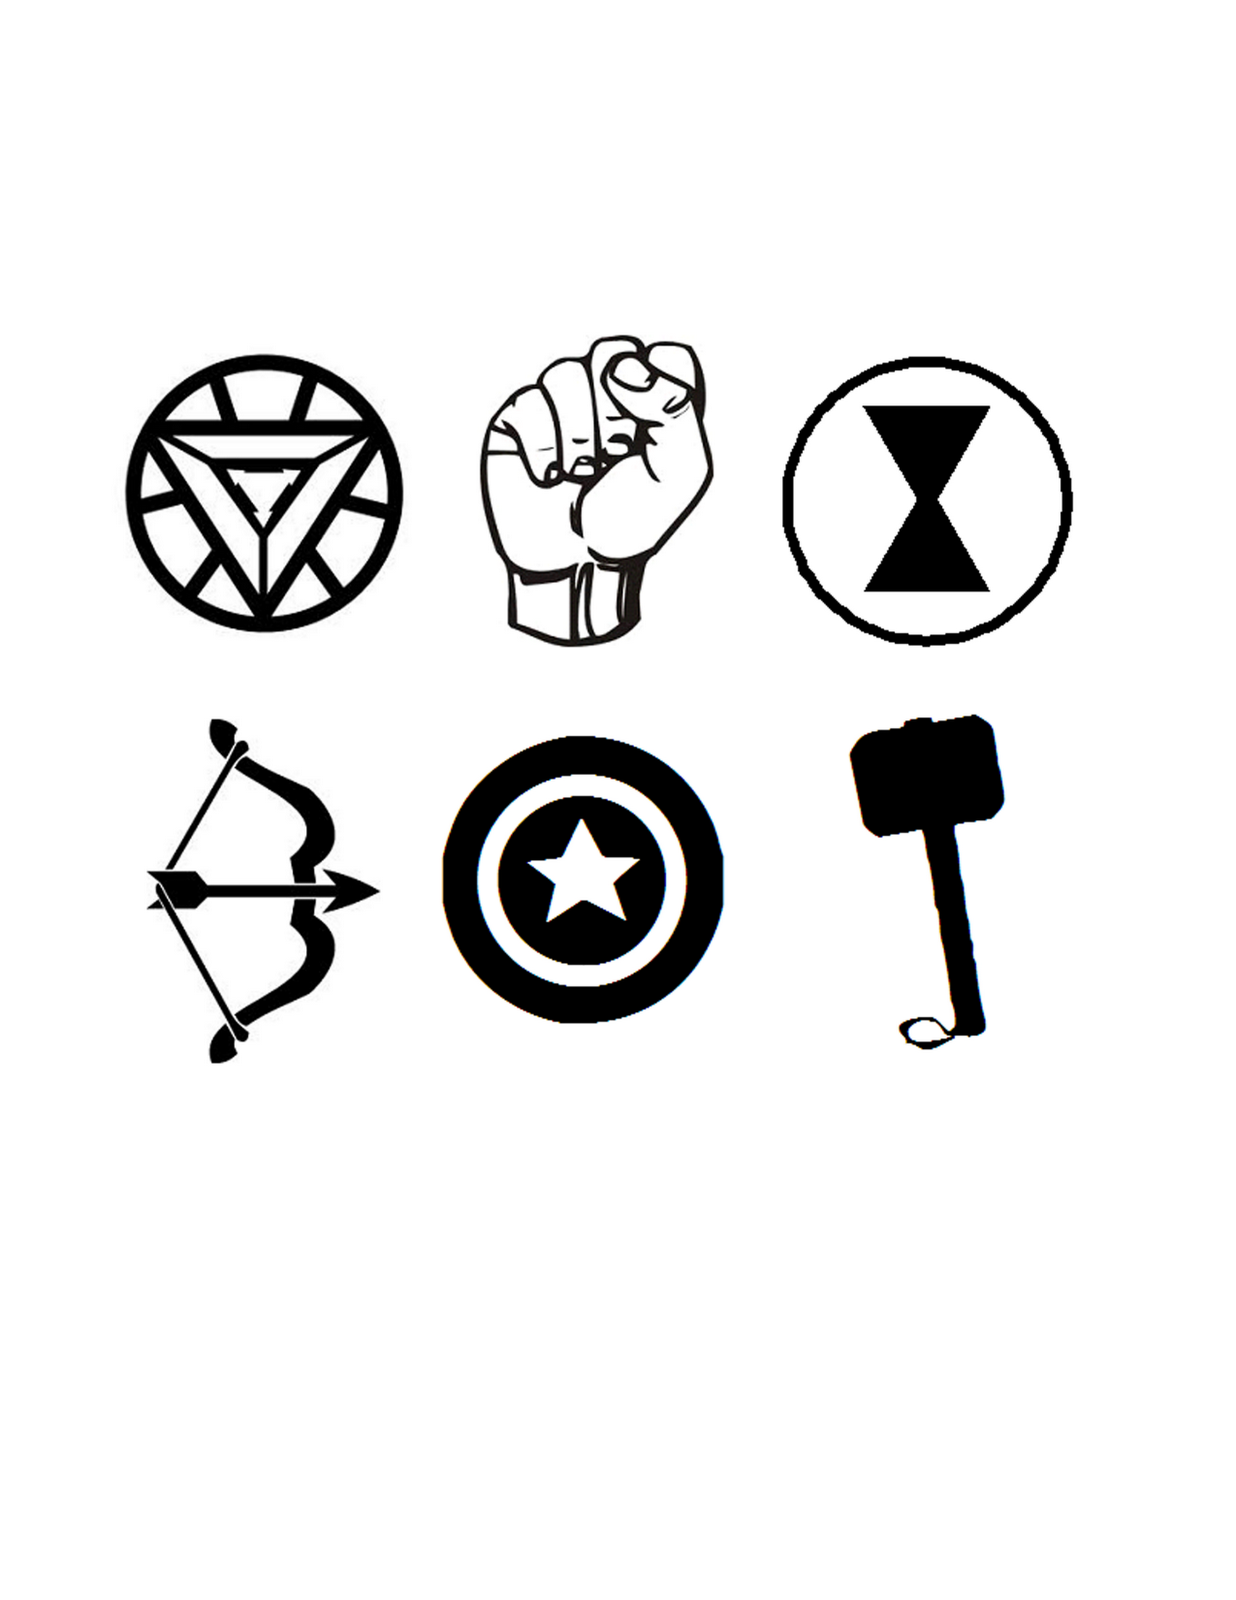 Trend Superhero Logos Coloring Pages